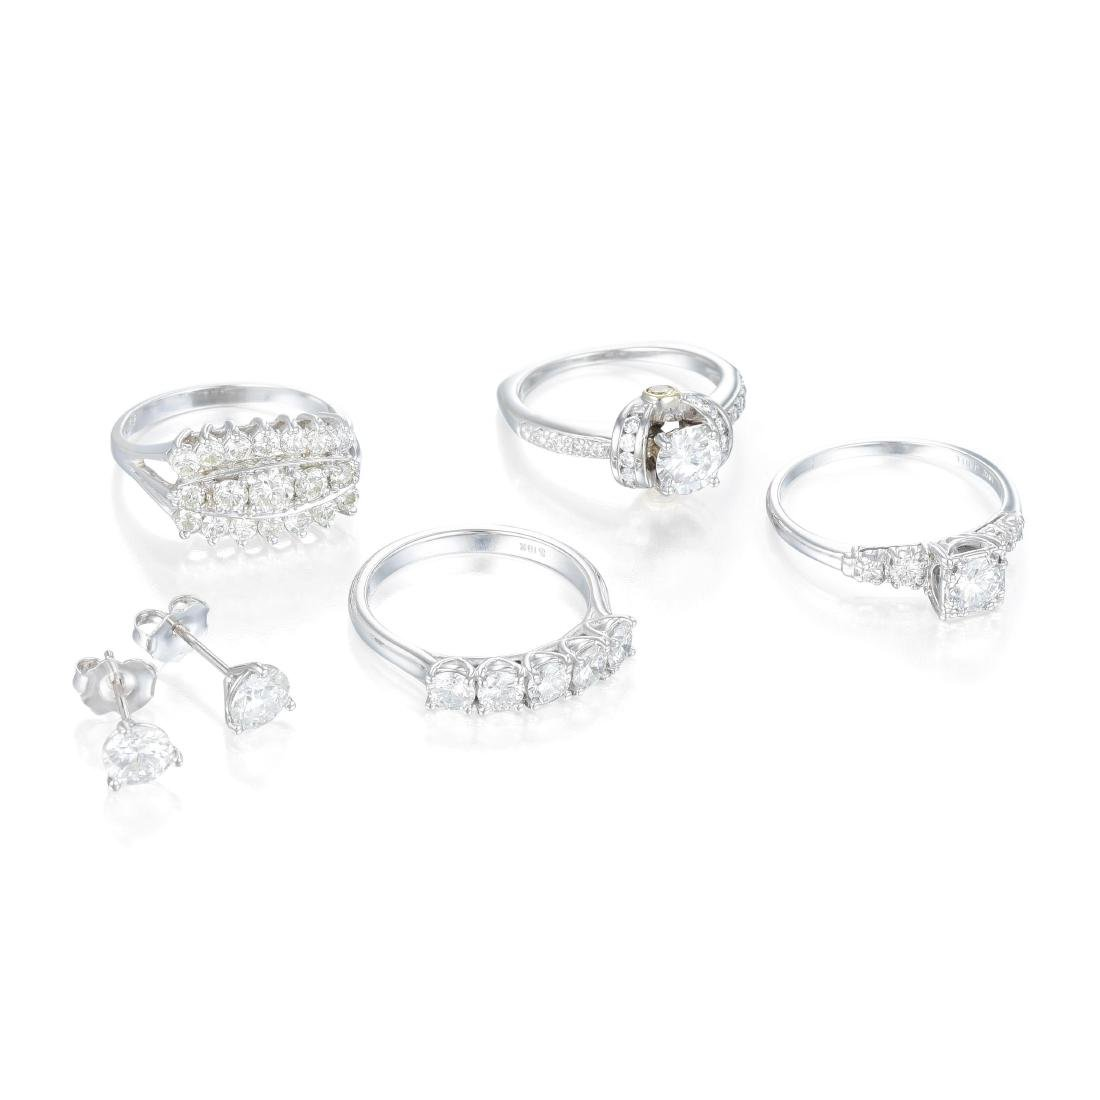 A Lot of 5 Pieces of Diamond Jewelry